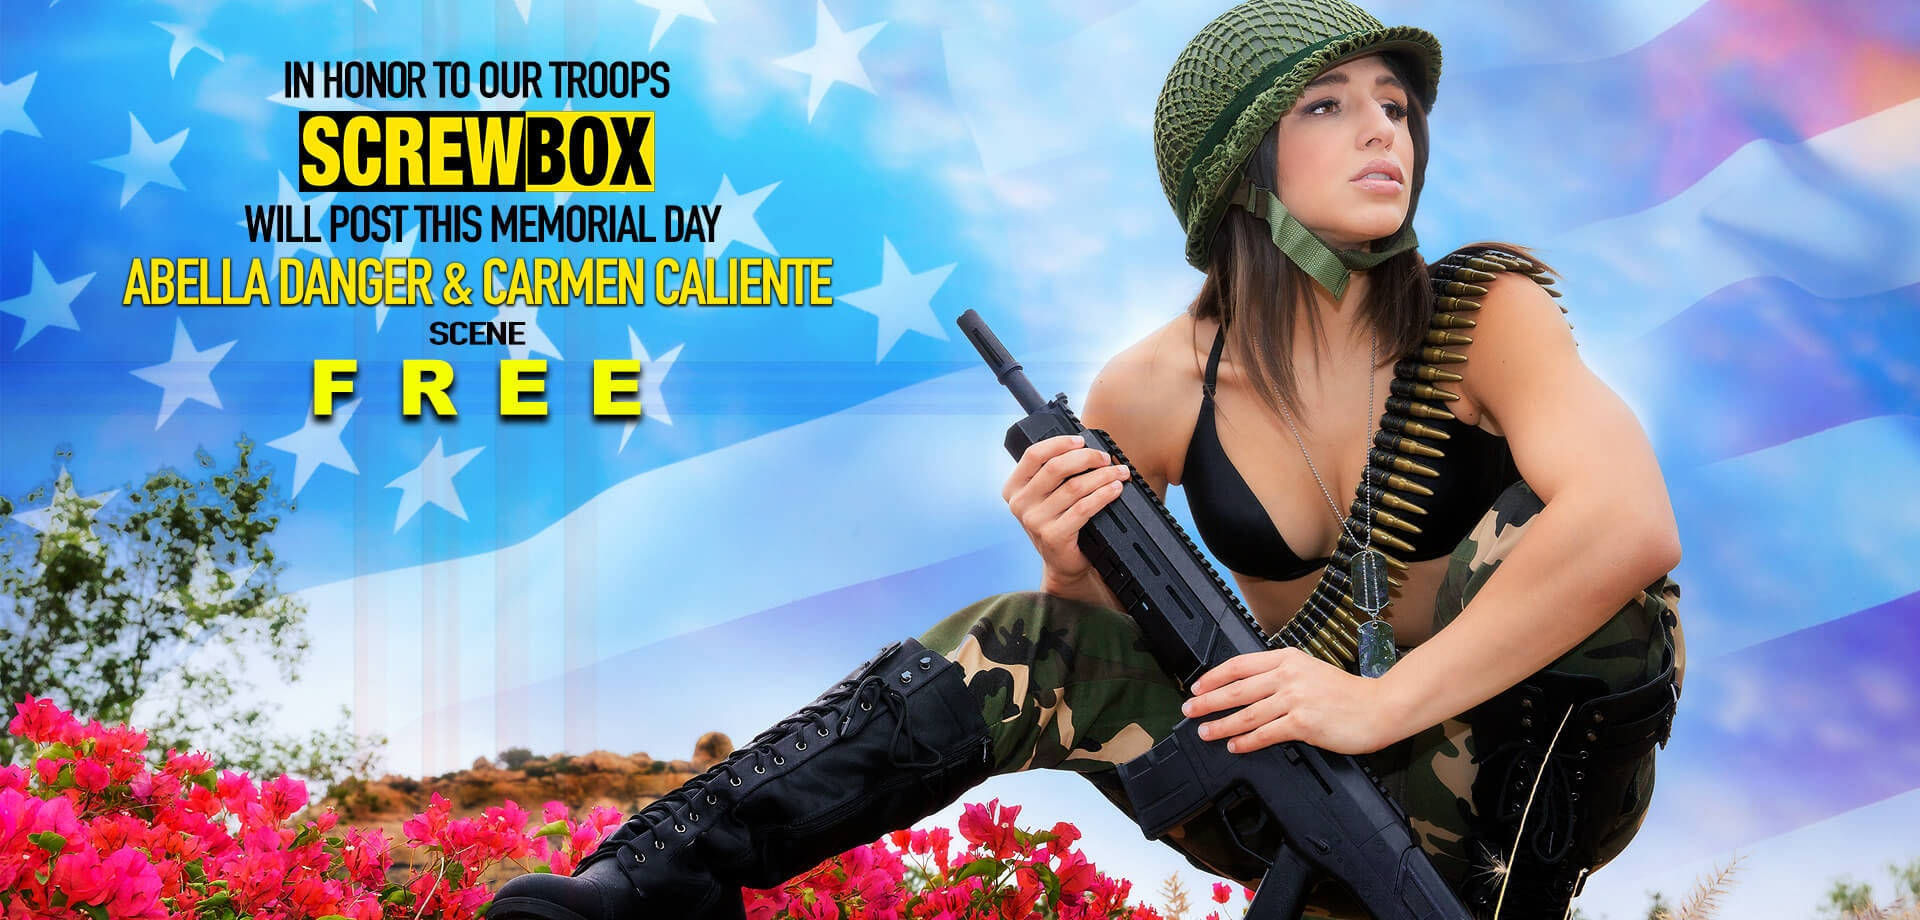 Abella Danger and Carmen Caliente in Memorial Day Special